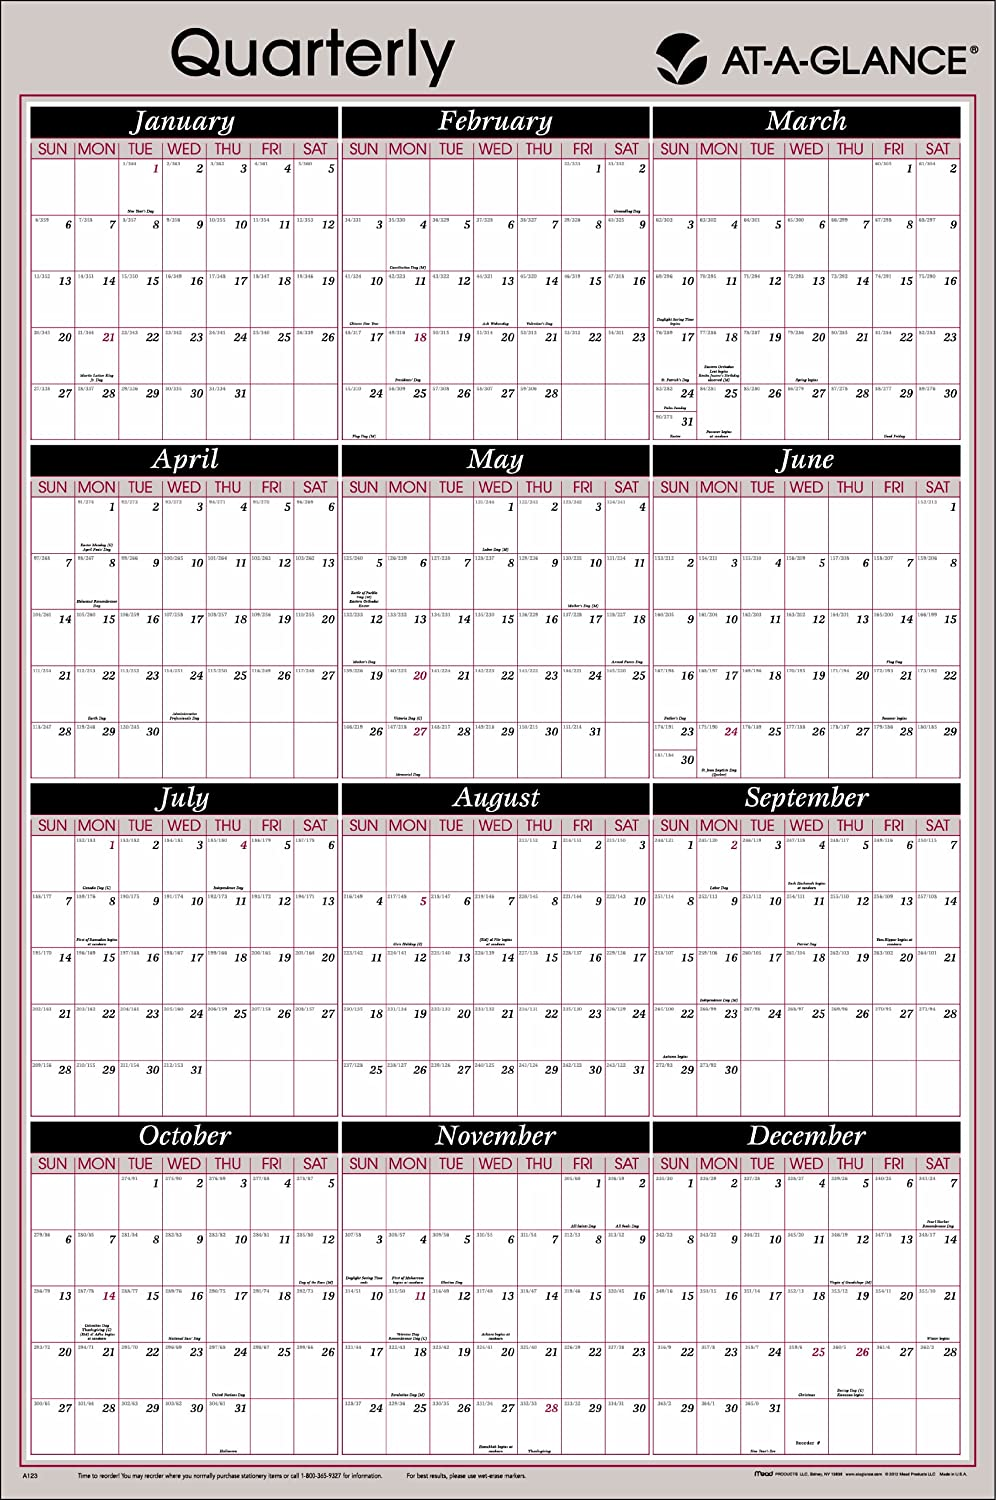 AT-A-GLANCE 2014 Grünical and Horizontal Erasable Yearly Wall Wall Wall Planner, 36 x 24 Inch Page Größe (A123) by At-A-Glance B00D515N12 | Gute Qualität  7f1b91